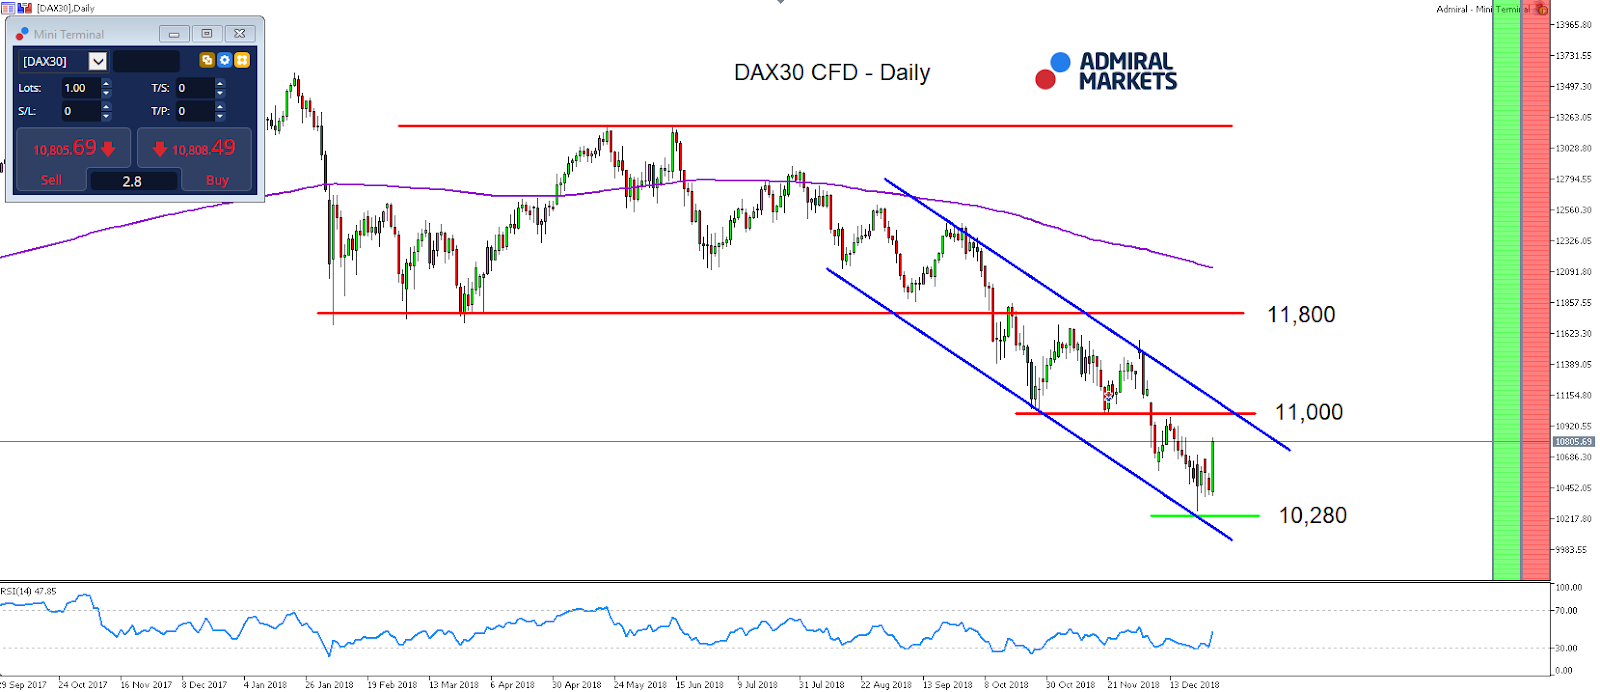 DAX30 CFD Daily